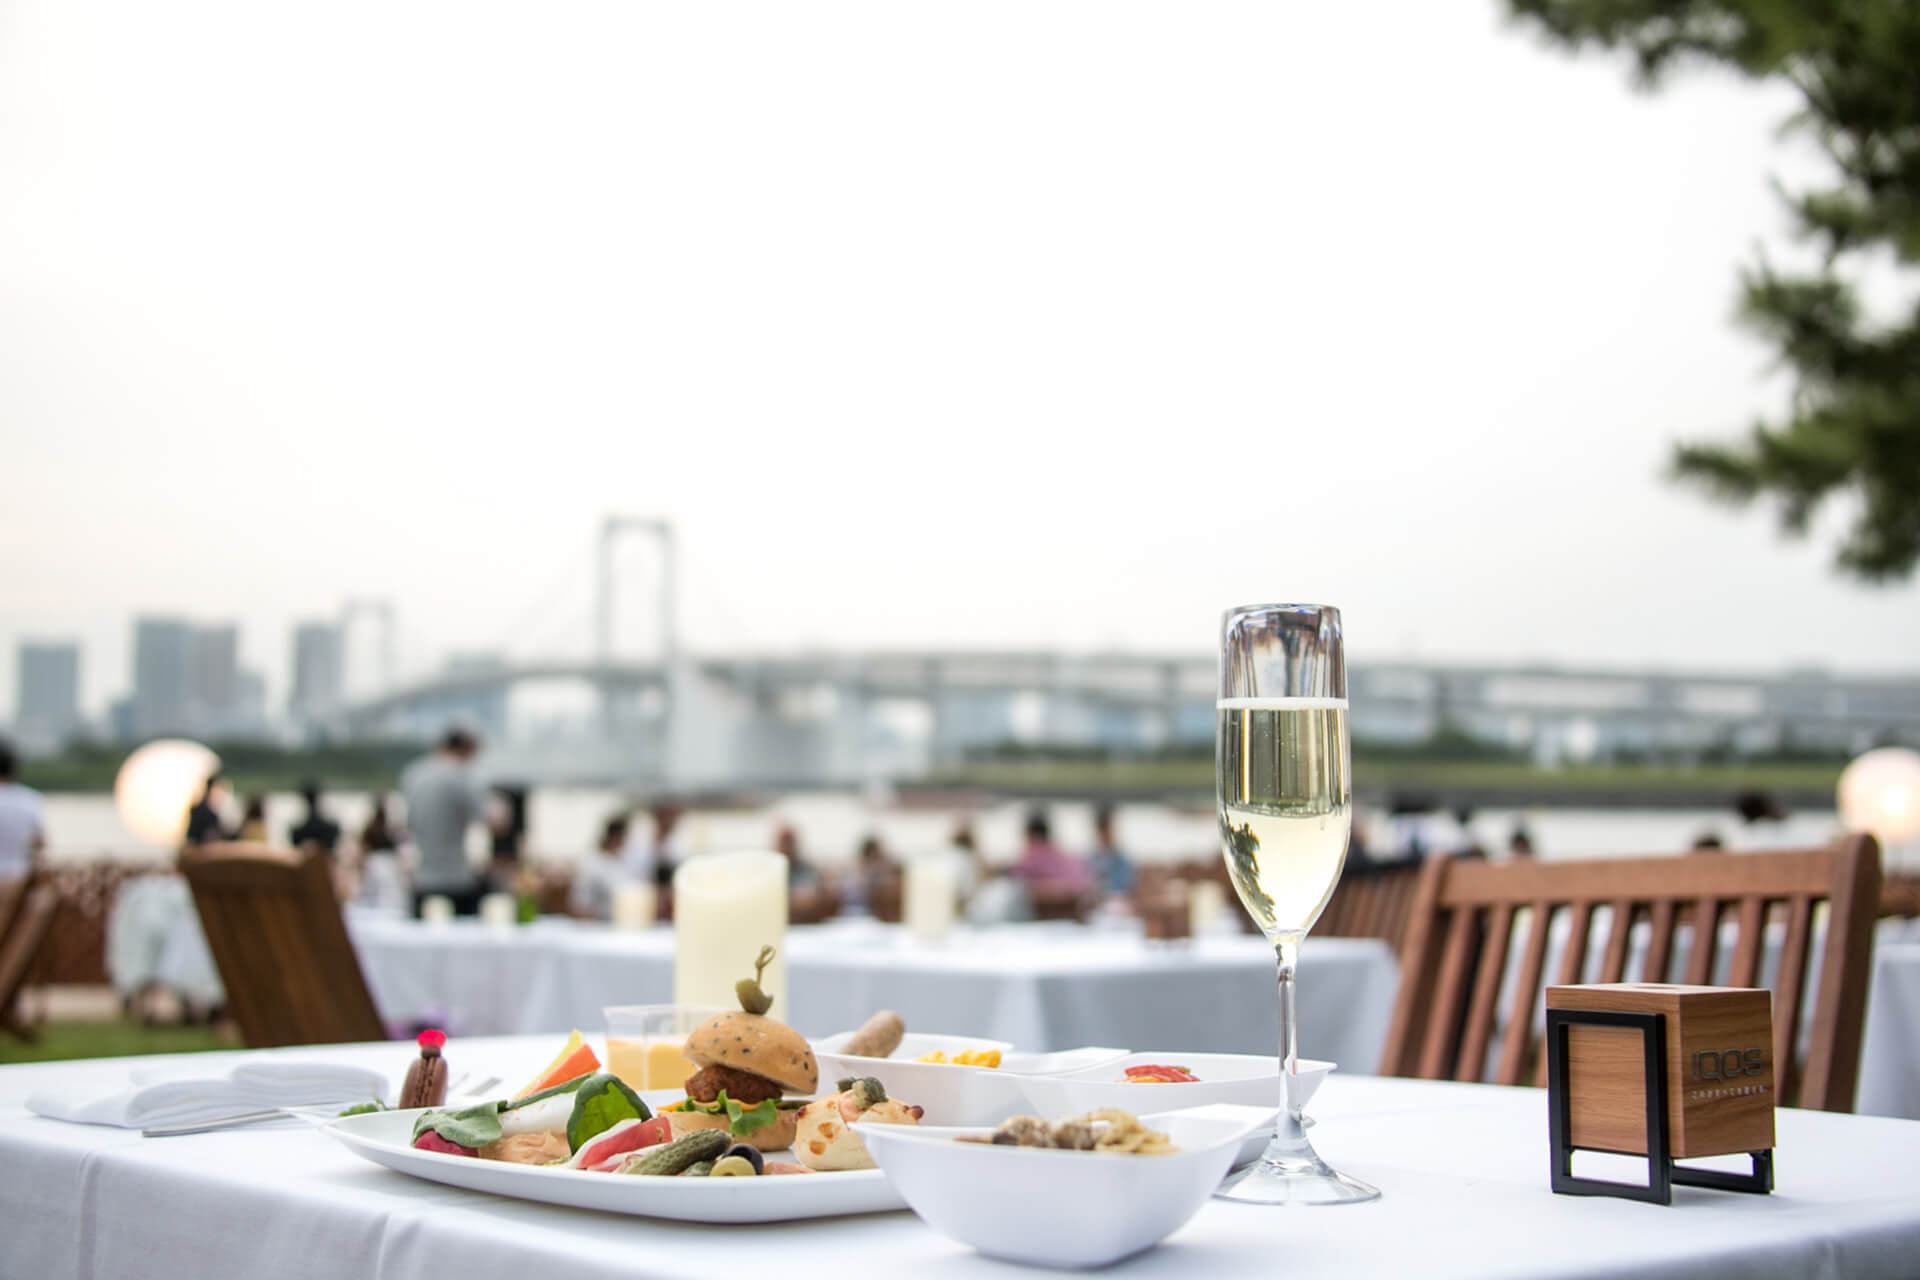 One can enjoy luxurious dinner at Star Island